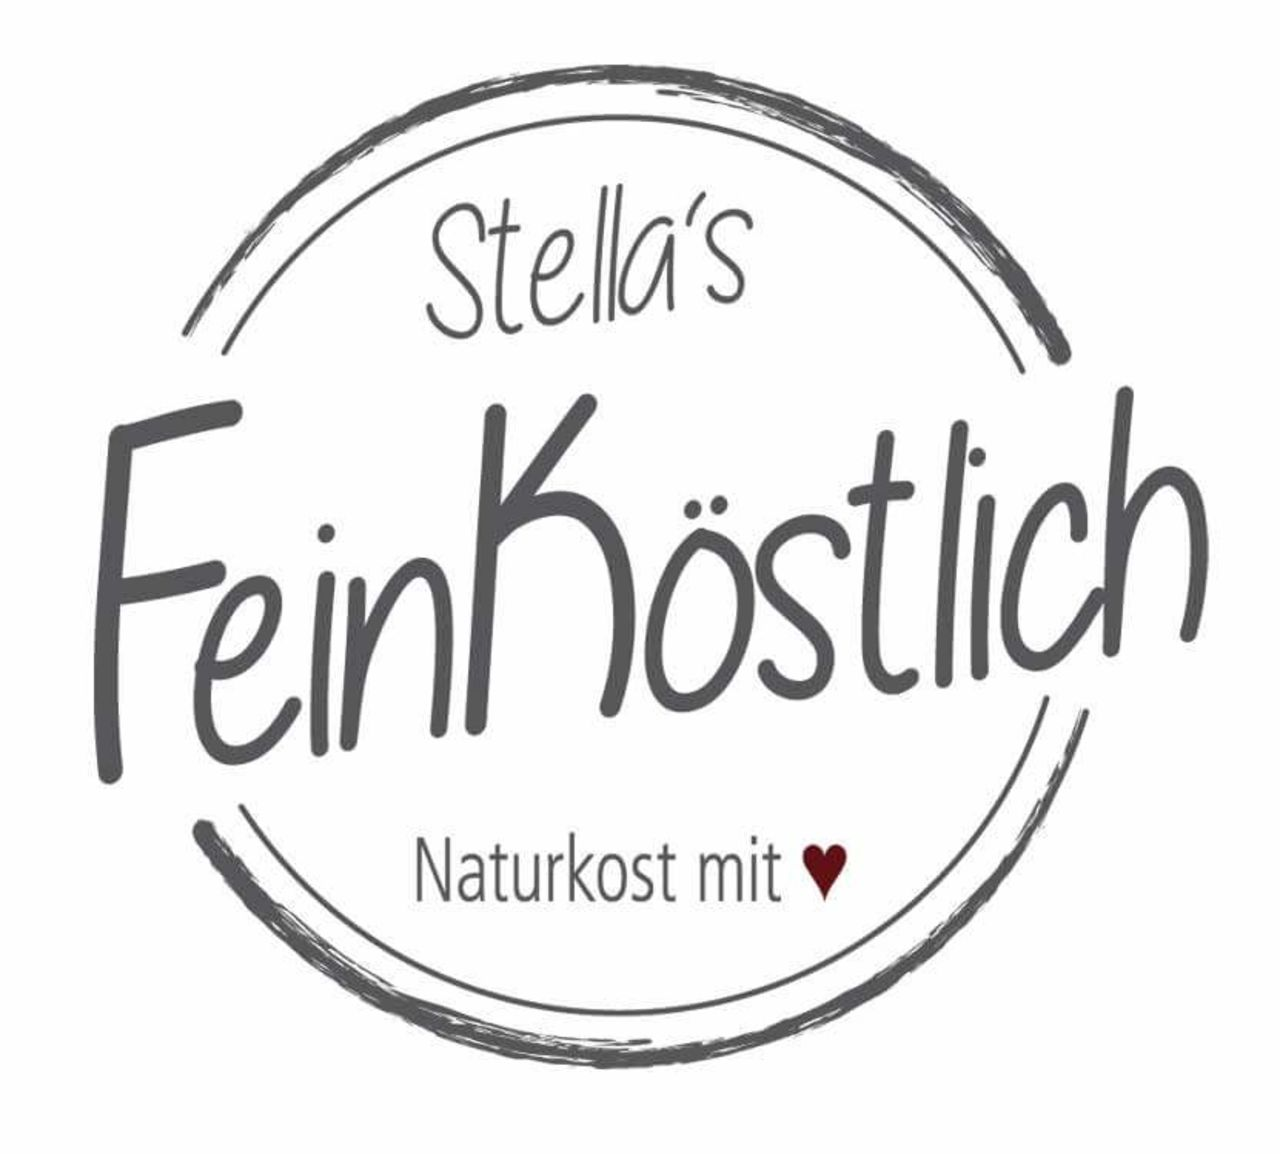 A photo of Stella's Feinköstlich